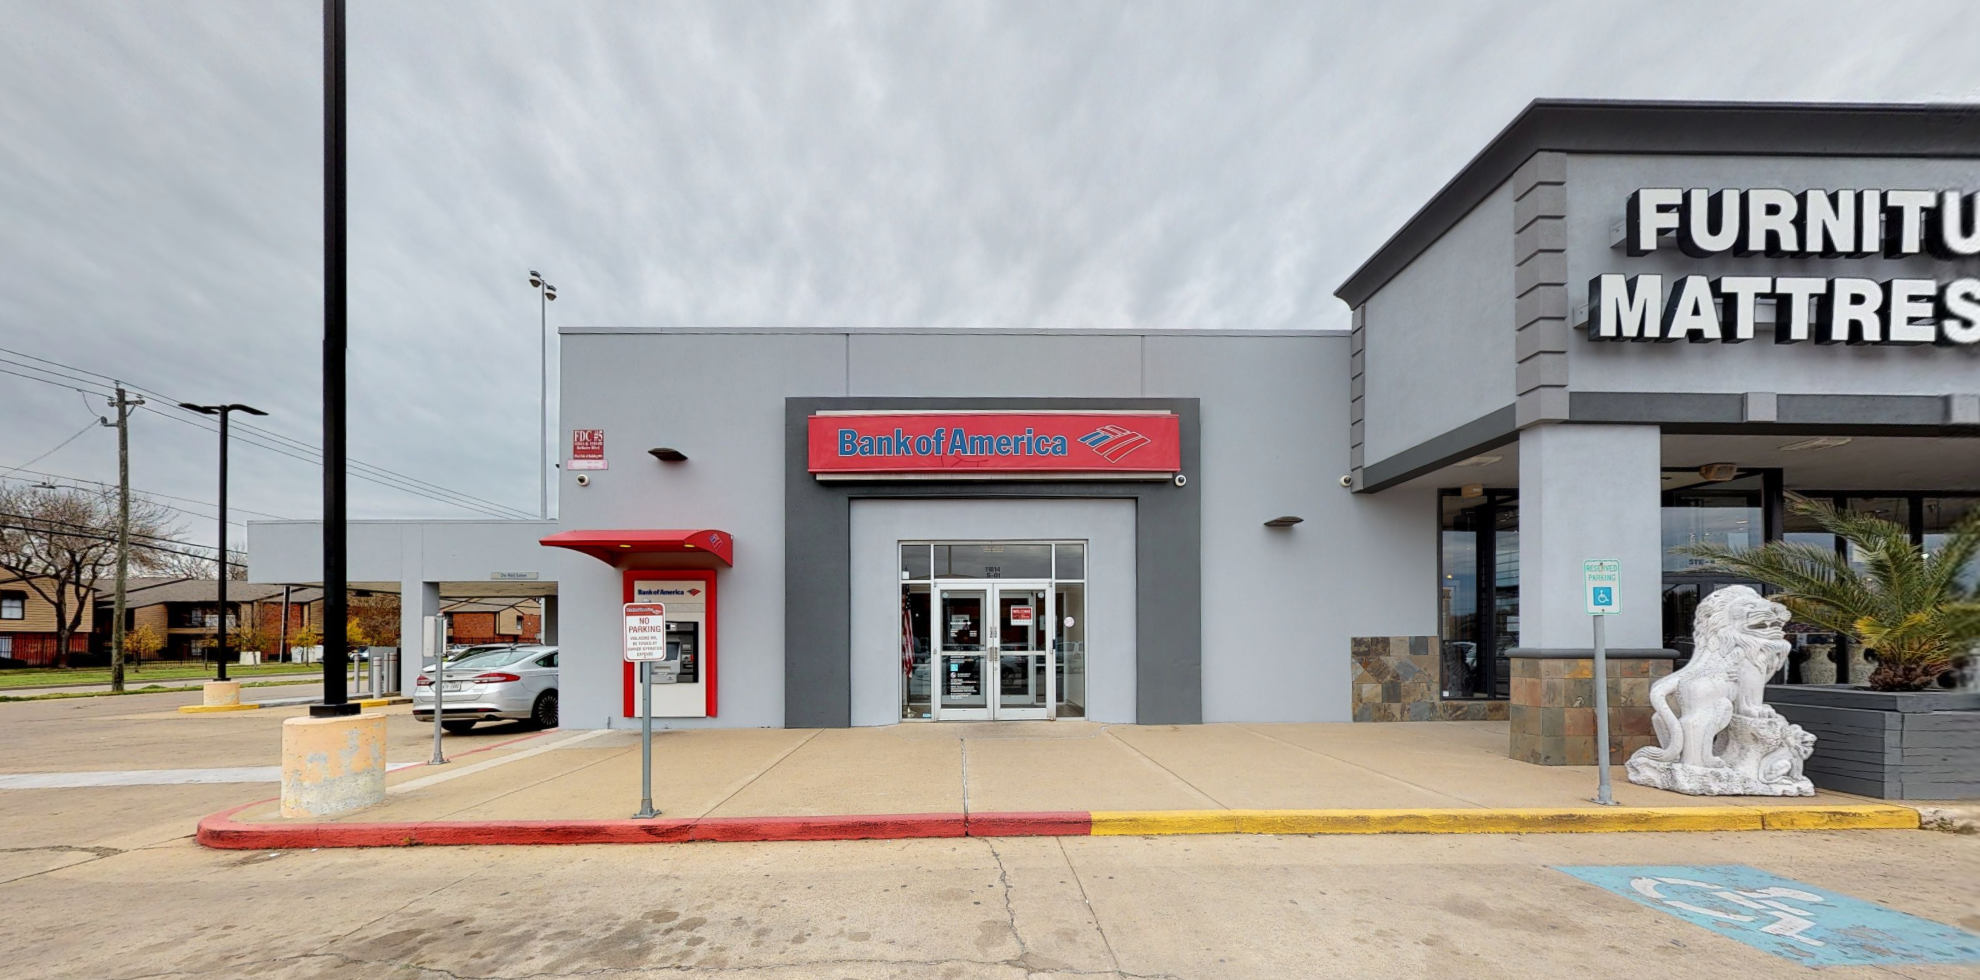 Bank of America financial center with drive-thru ATM and teller | 11814 Bellaire Blvd, Houston, TX 77072